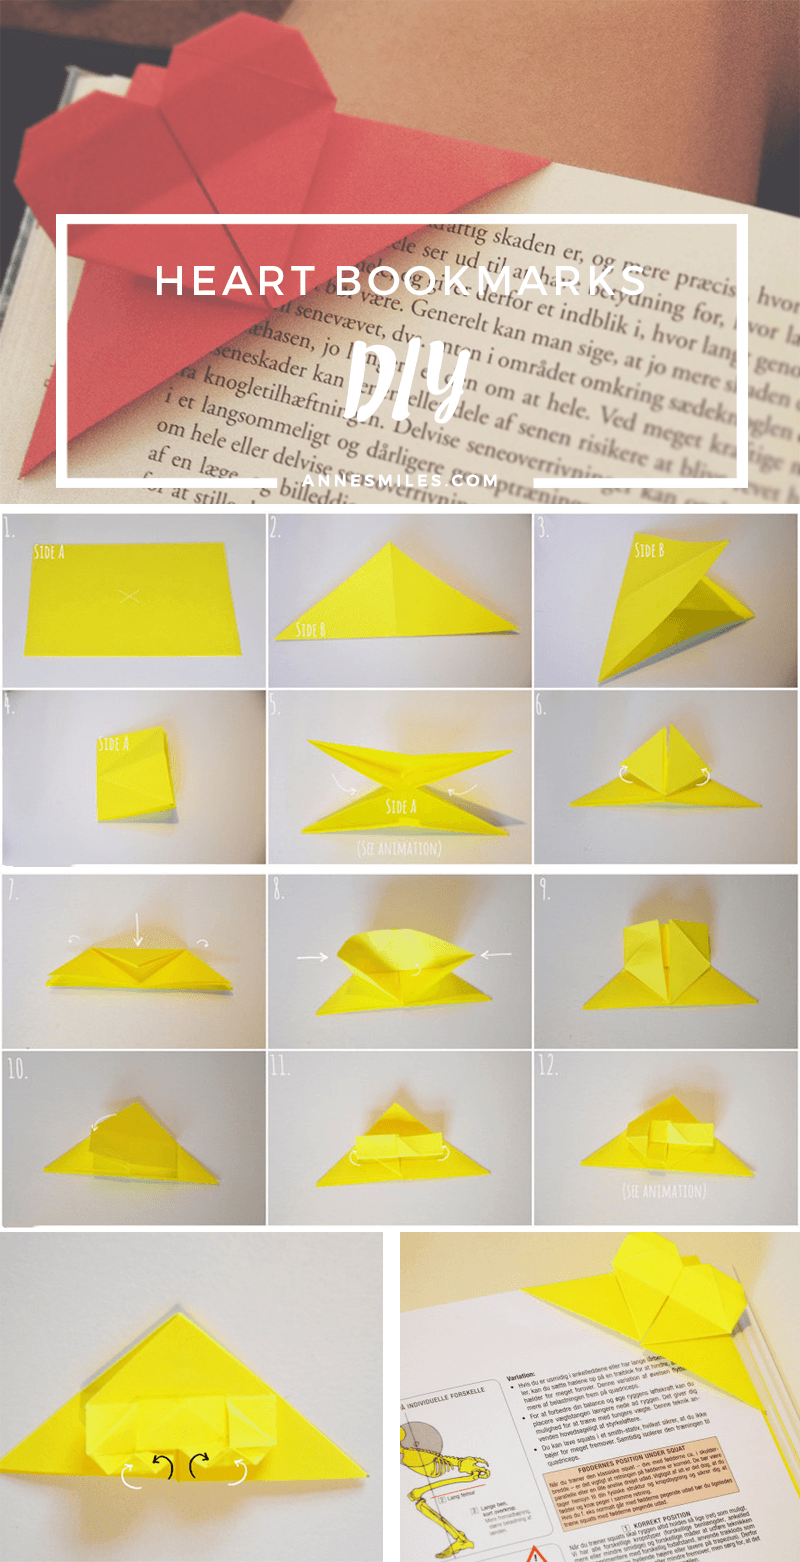 DIY: How to make heart bookmarks